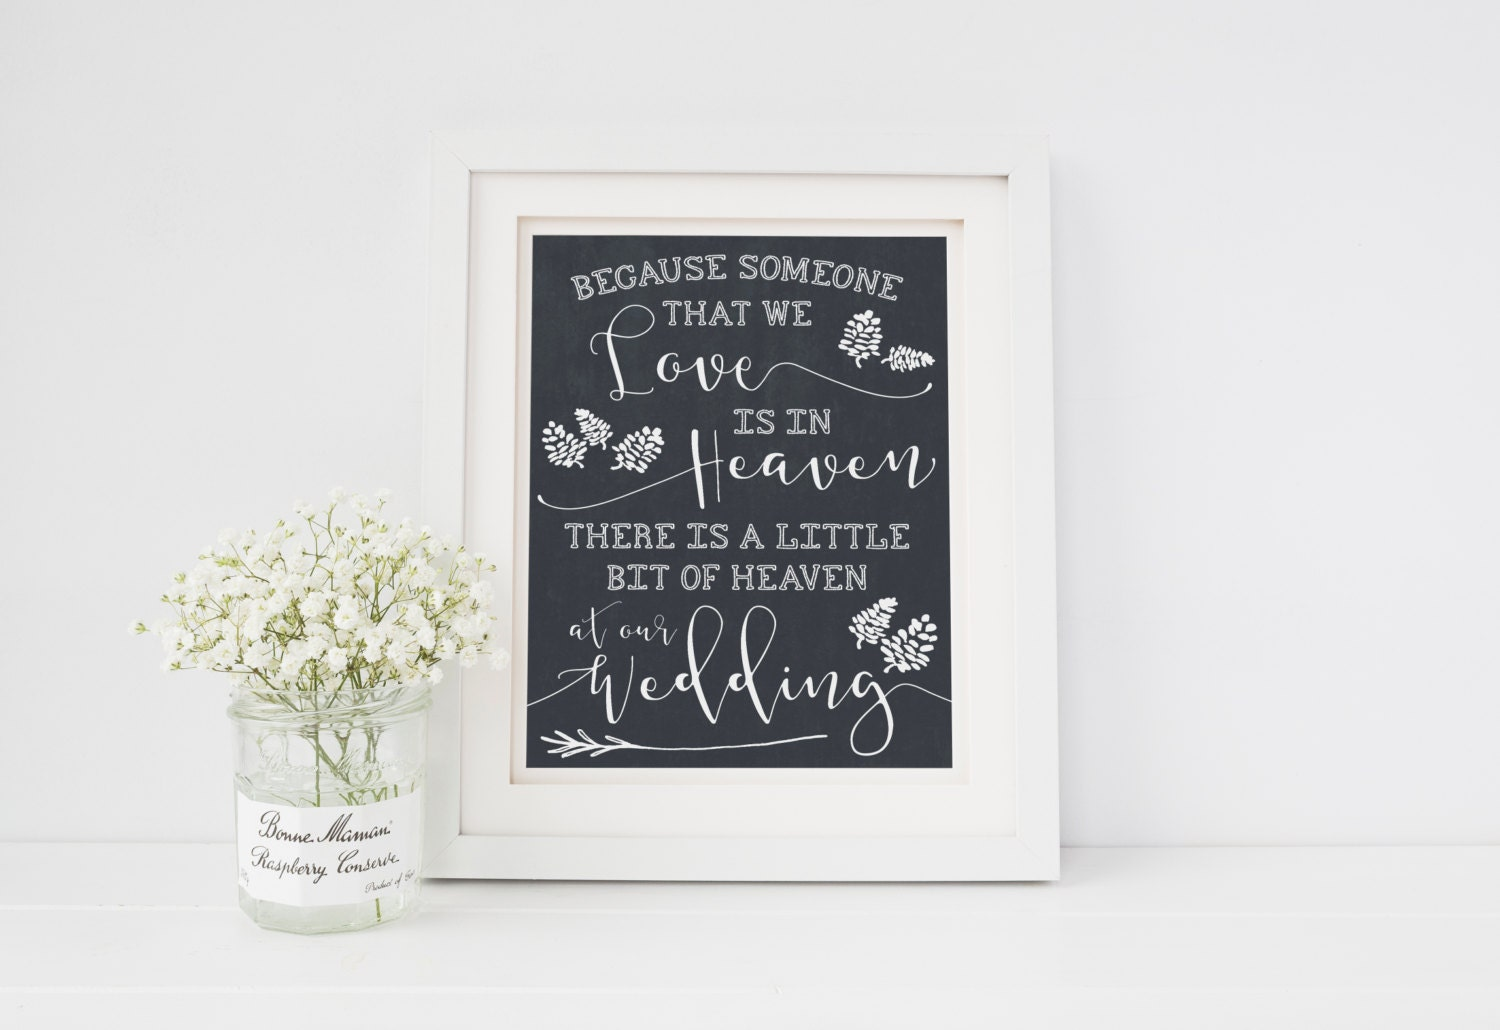 In Memory Of Printable Love Quote  Heaven Weddings Printable Wedding Reception Printable Decor. Printable Sign